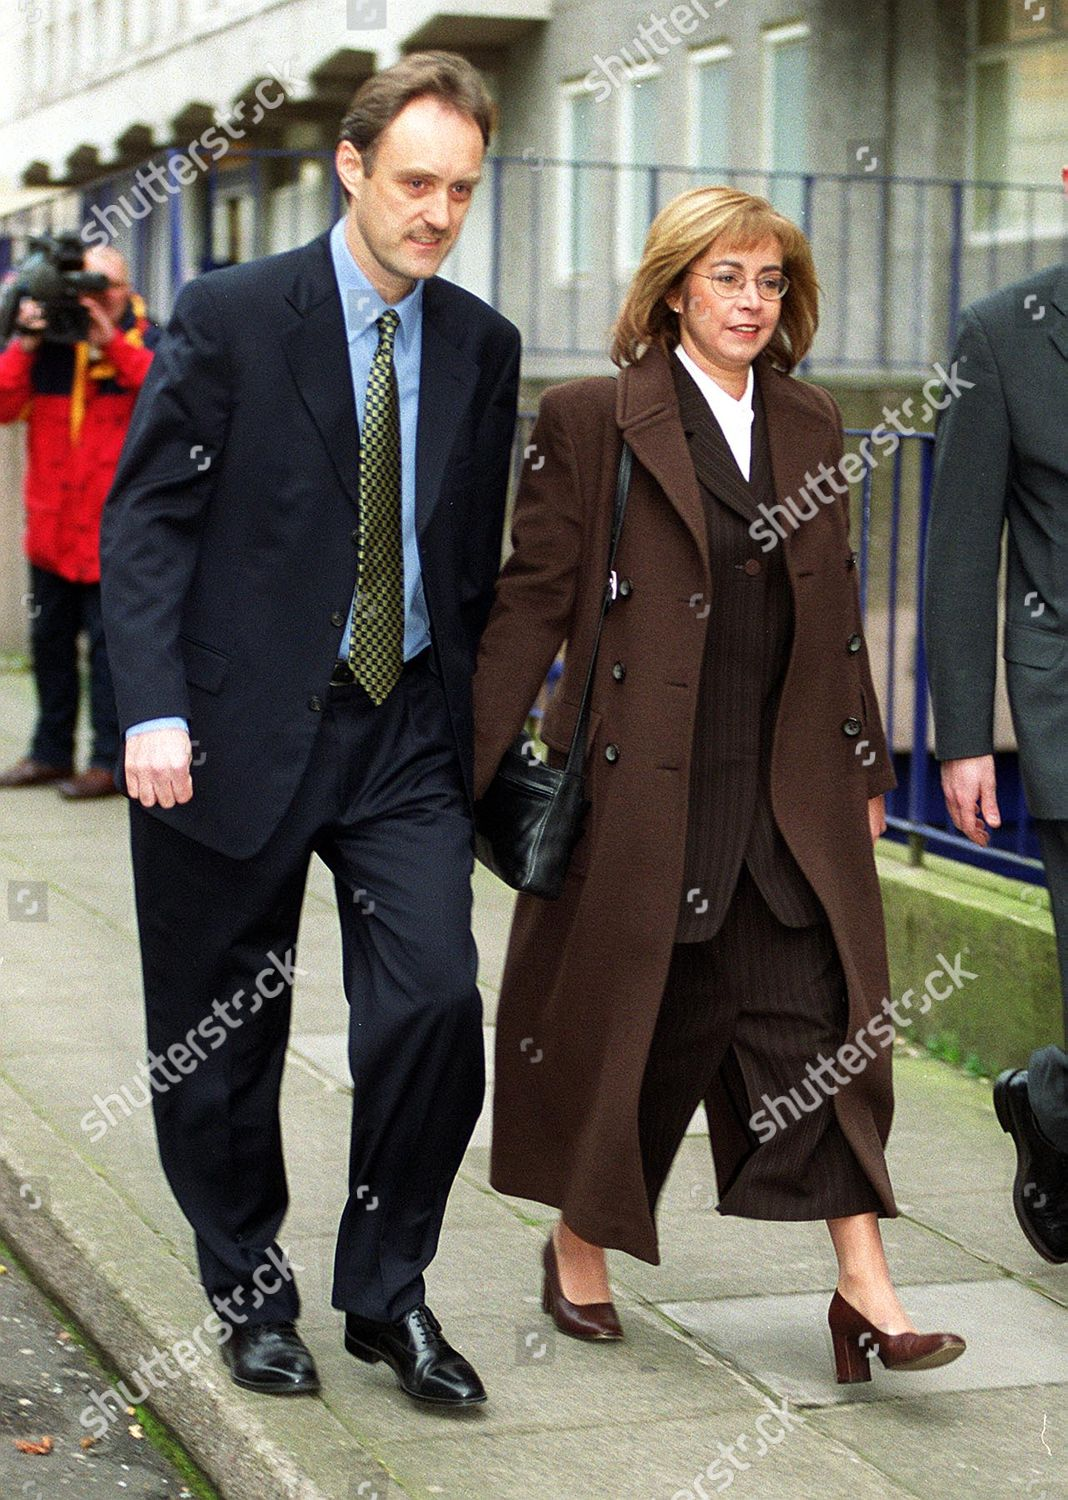 Amanda Holt Leaves Manchester Magistrates Court With Her Husband Steven. Sex  On Plane Charges.